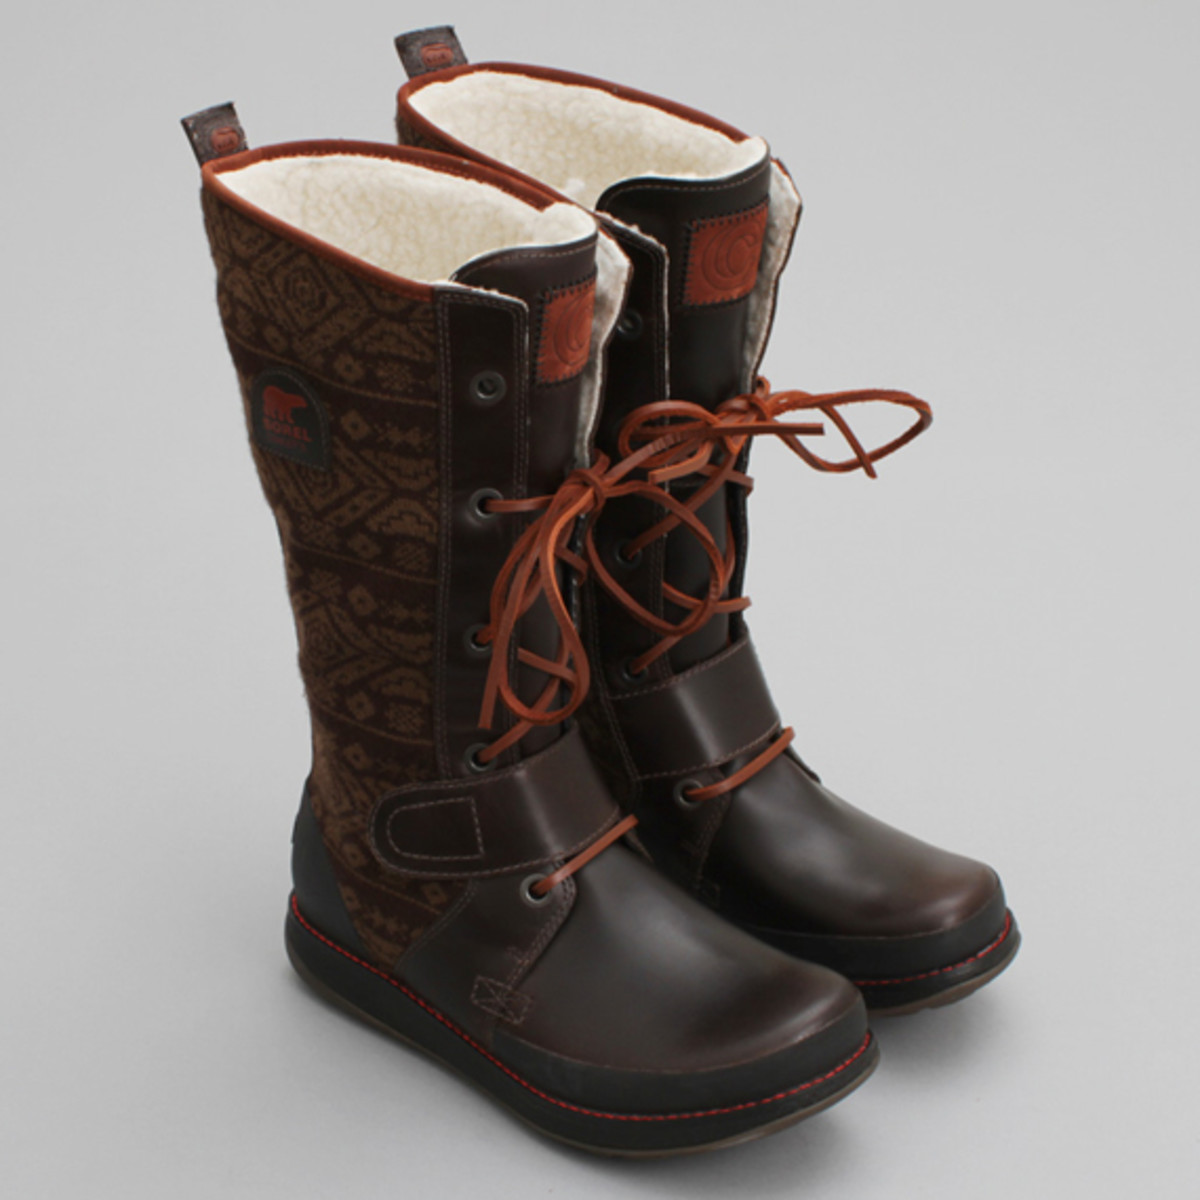 concepts-sorel-boots-pack-black-friday-18